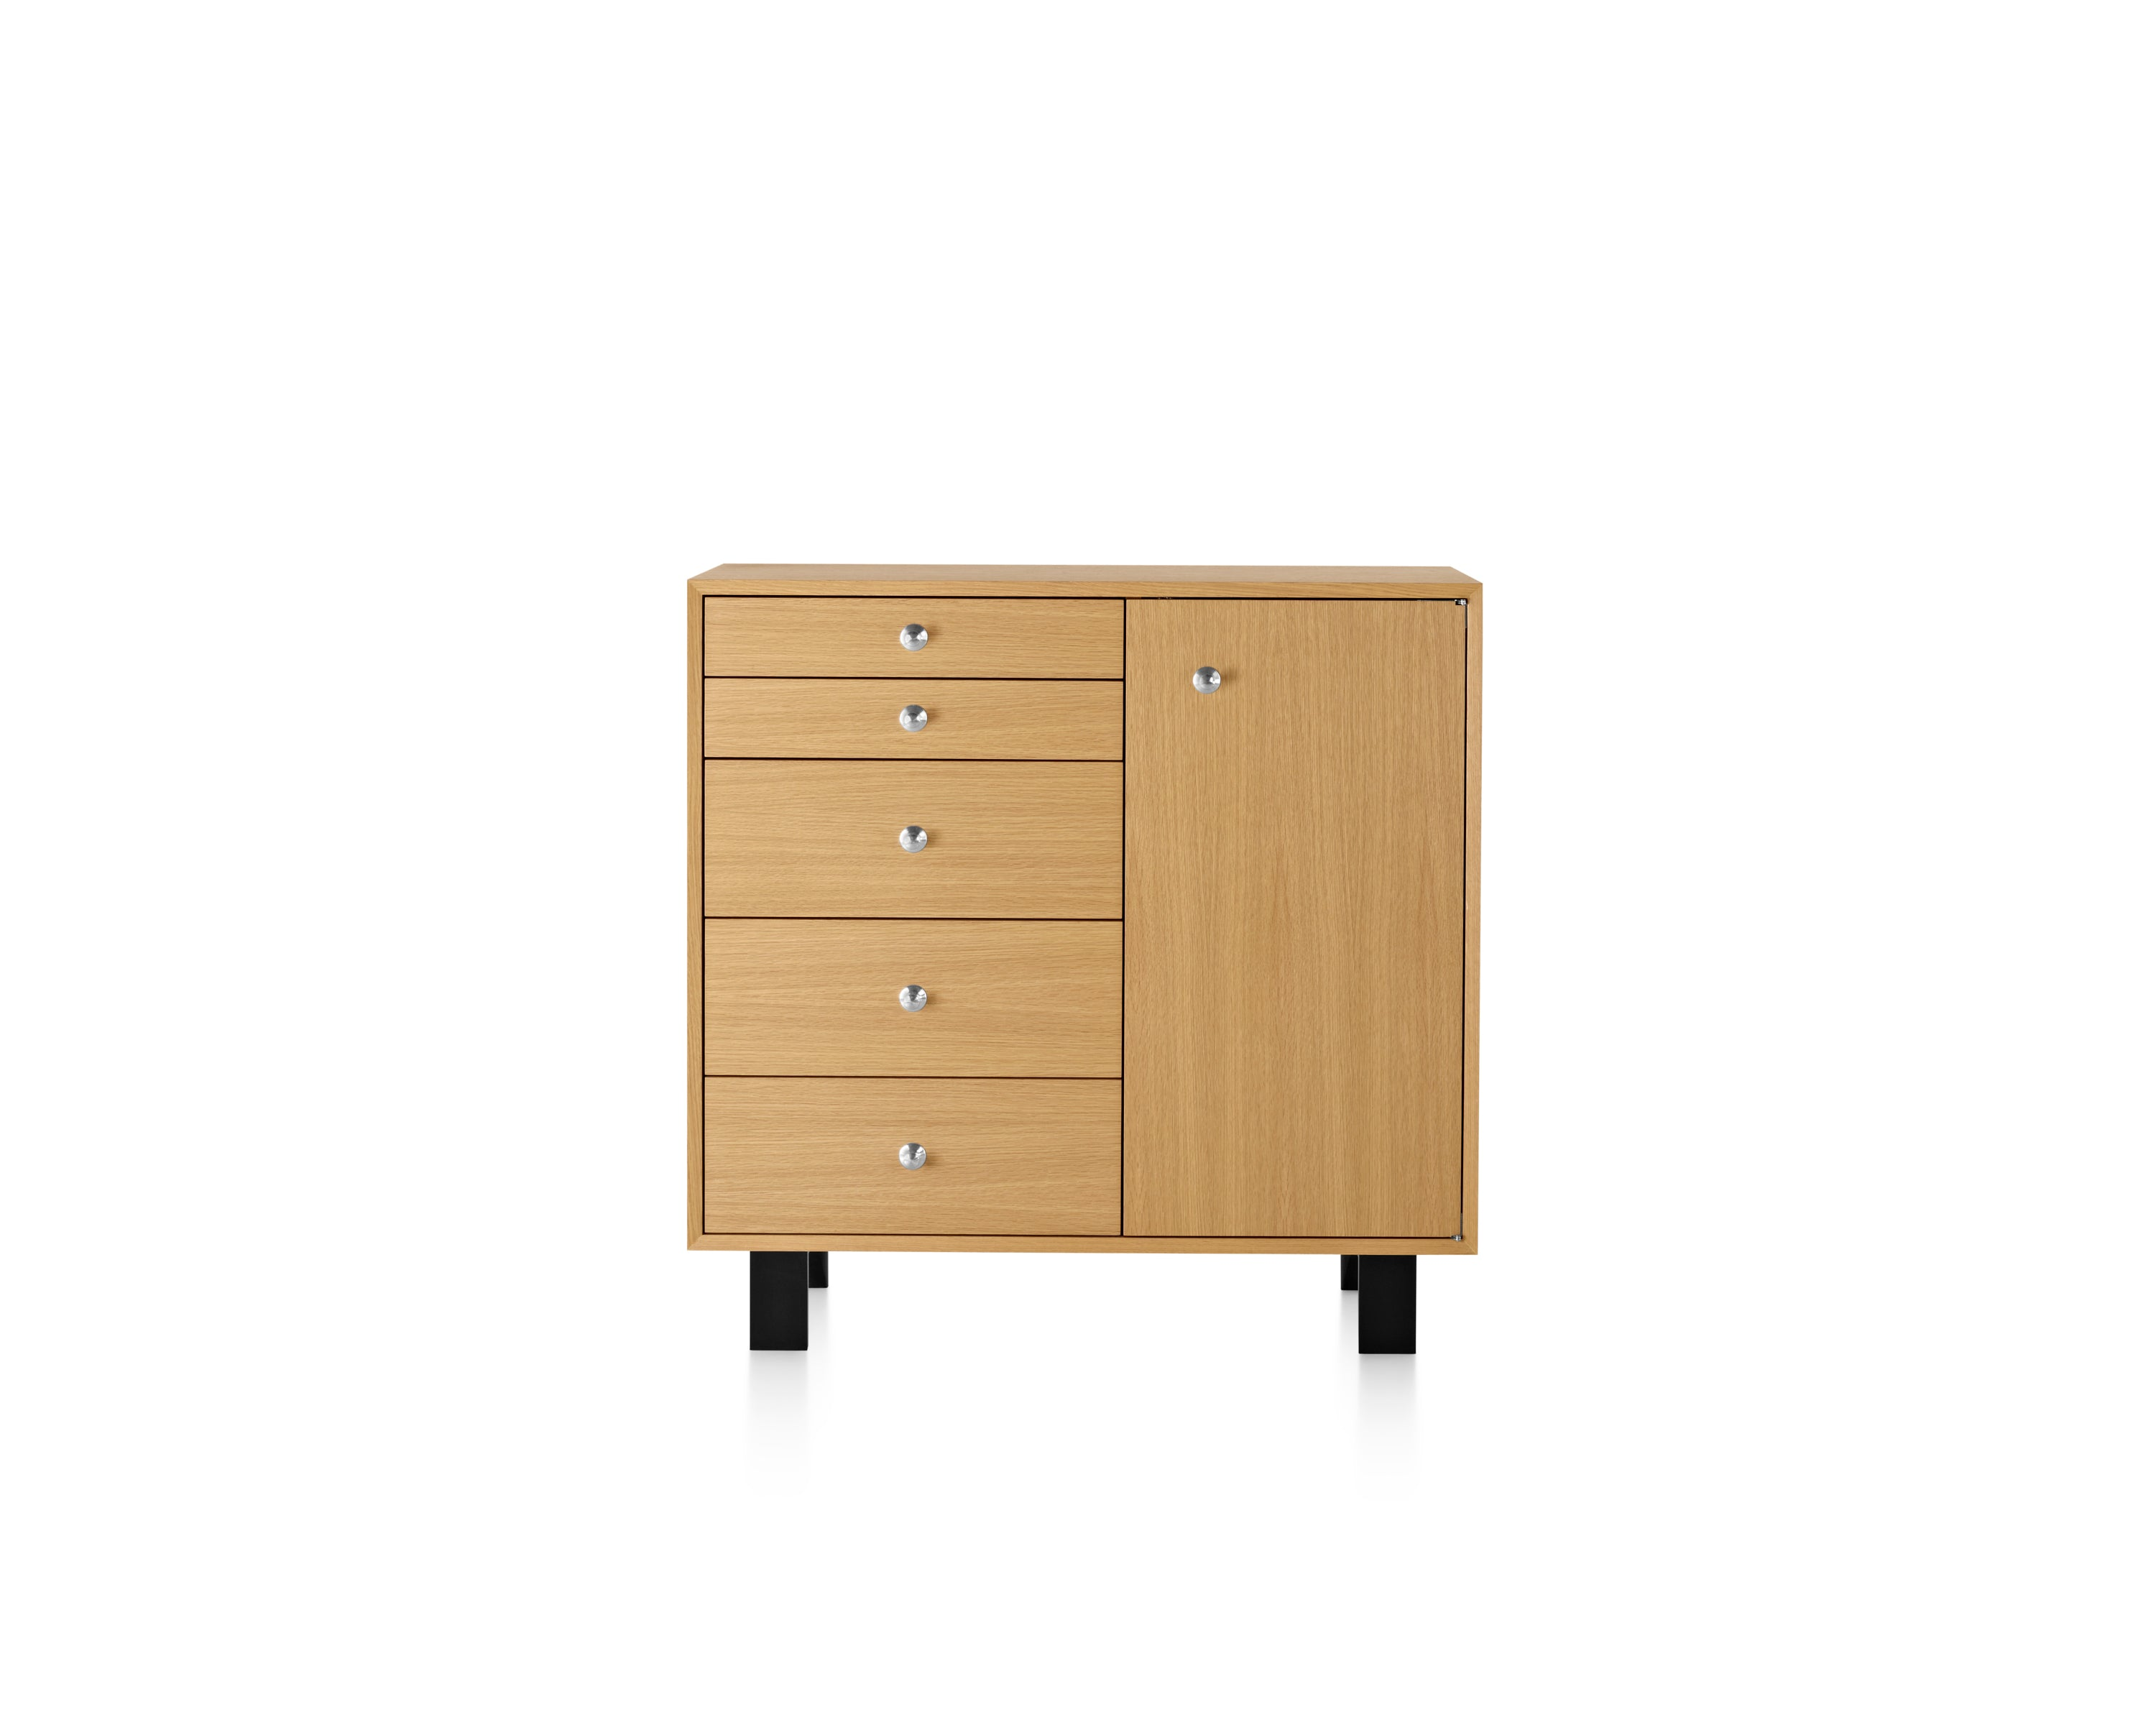 Nelson™ BASIC CABINET LARGE 34X40, 5 DRAWER  Designed by George Nelson for Herman Miller®